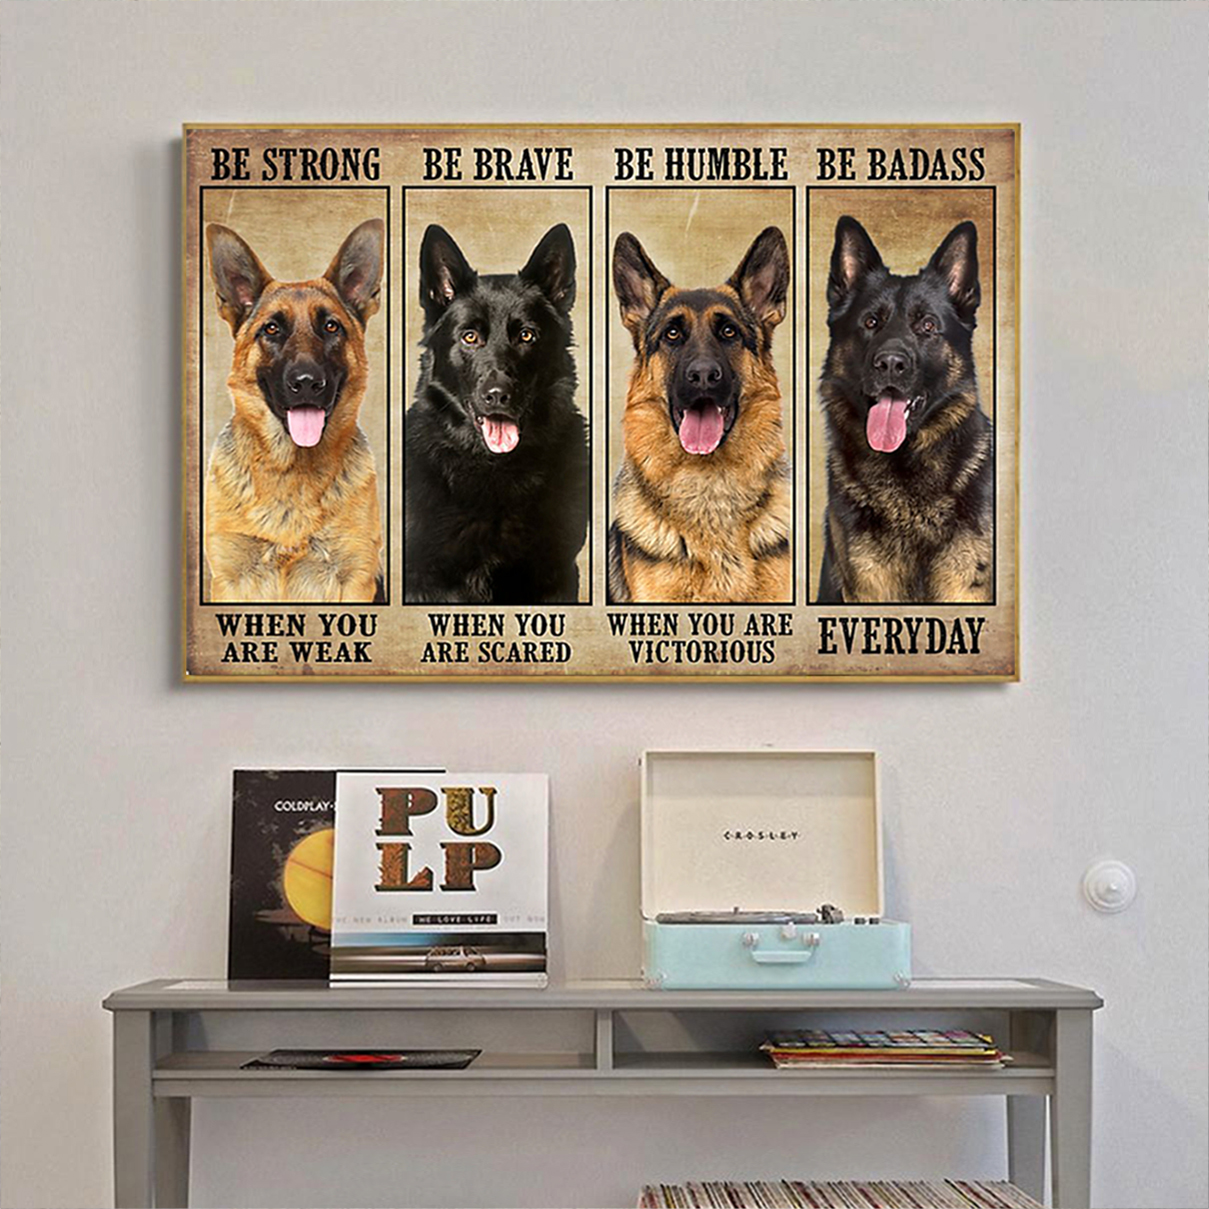 German shepherd be strong be brave be humble be badass poster A3